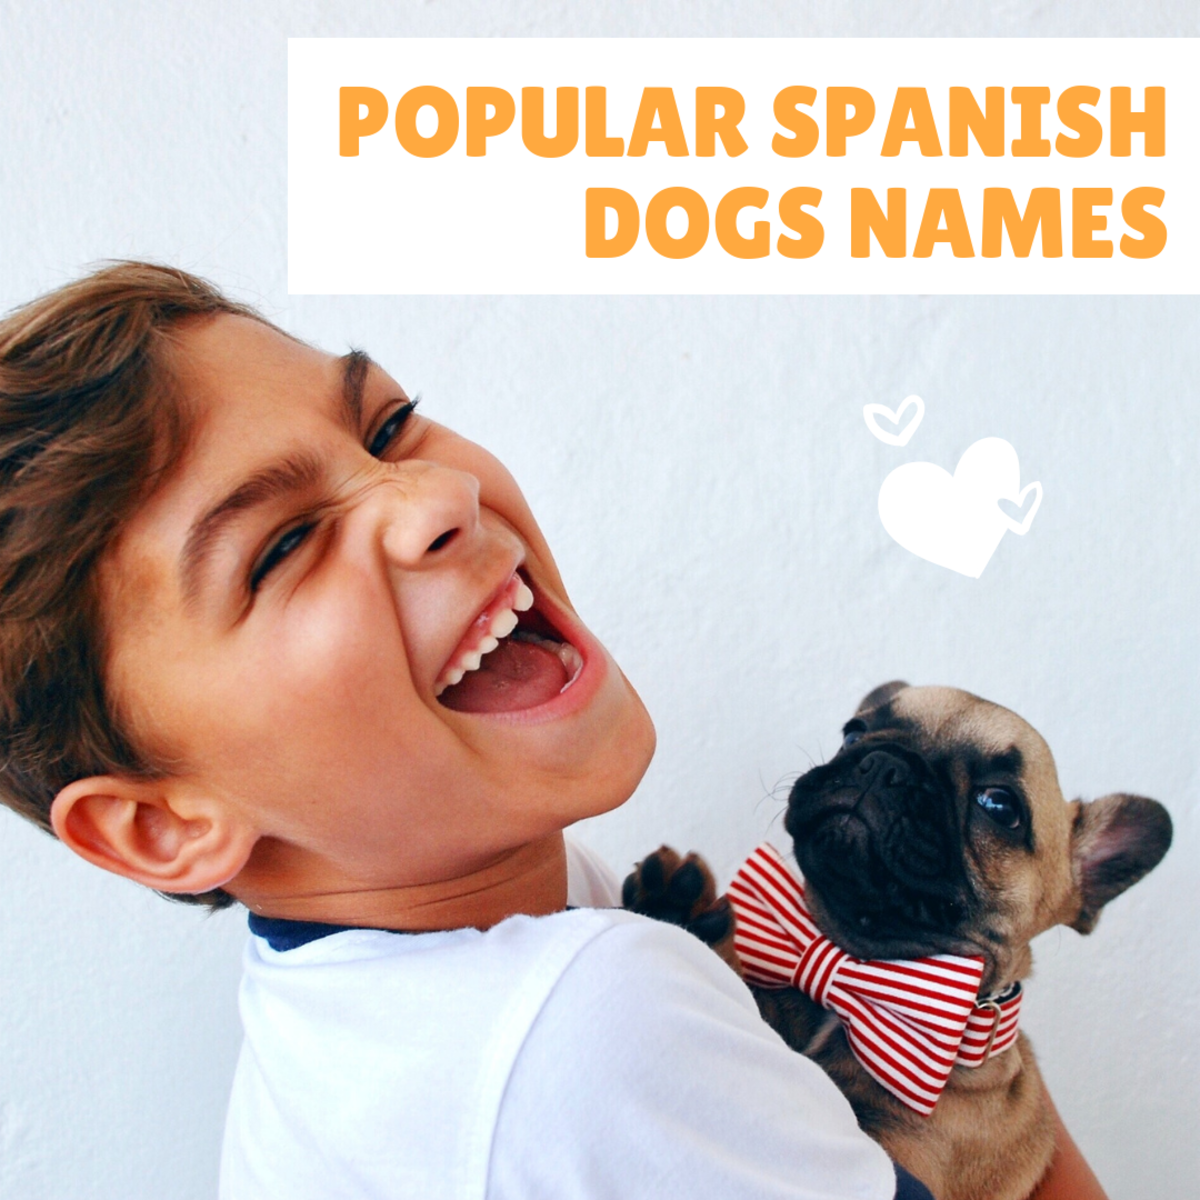 100 Popular Spanish Dog Names And Meanings Pethelpful By Fellow Animal Lovers And Experts